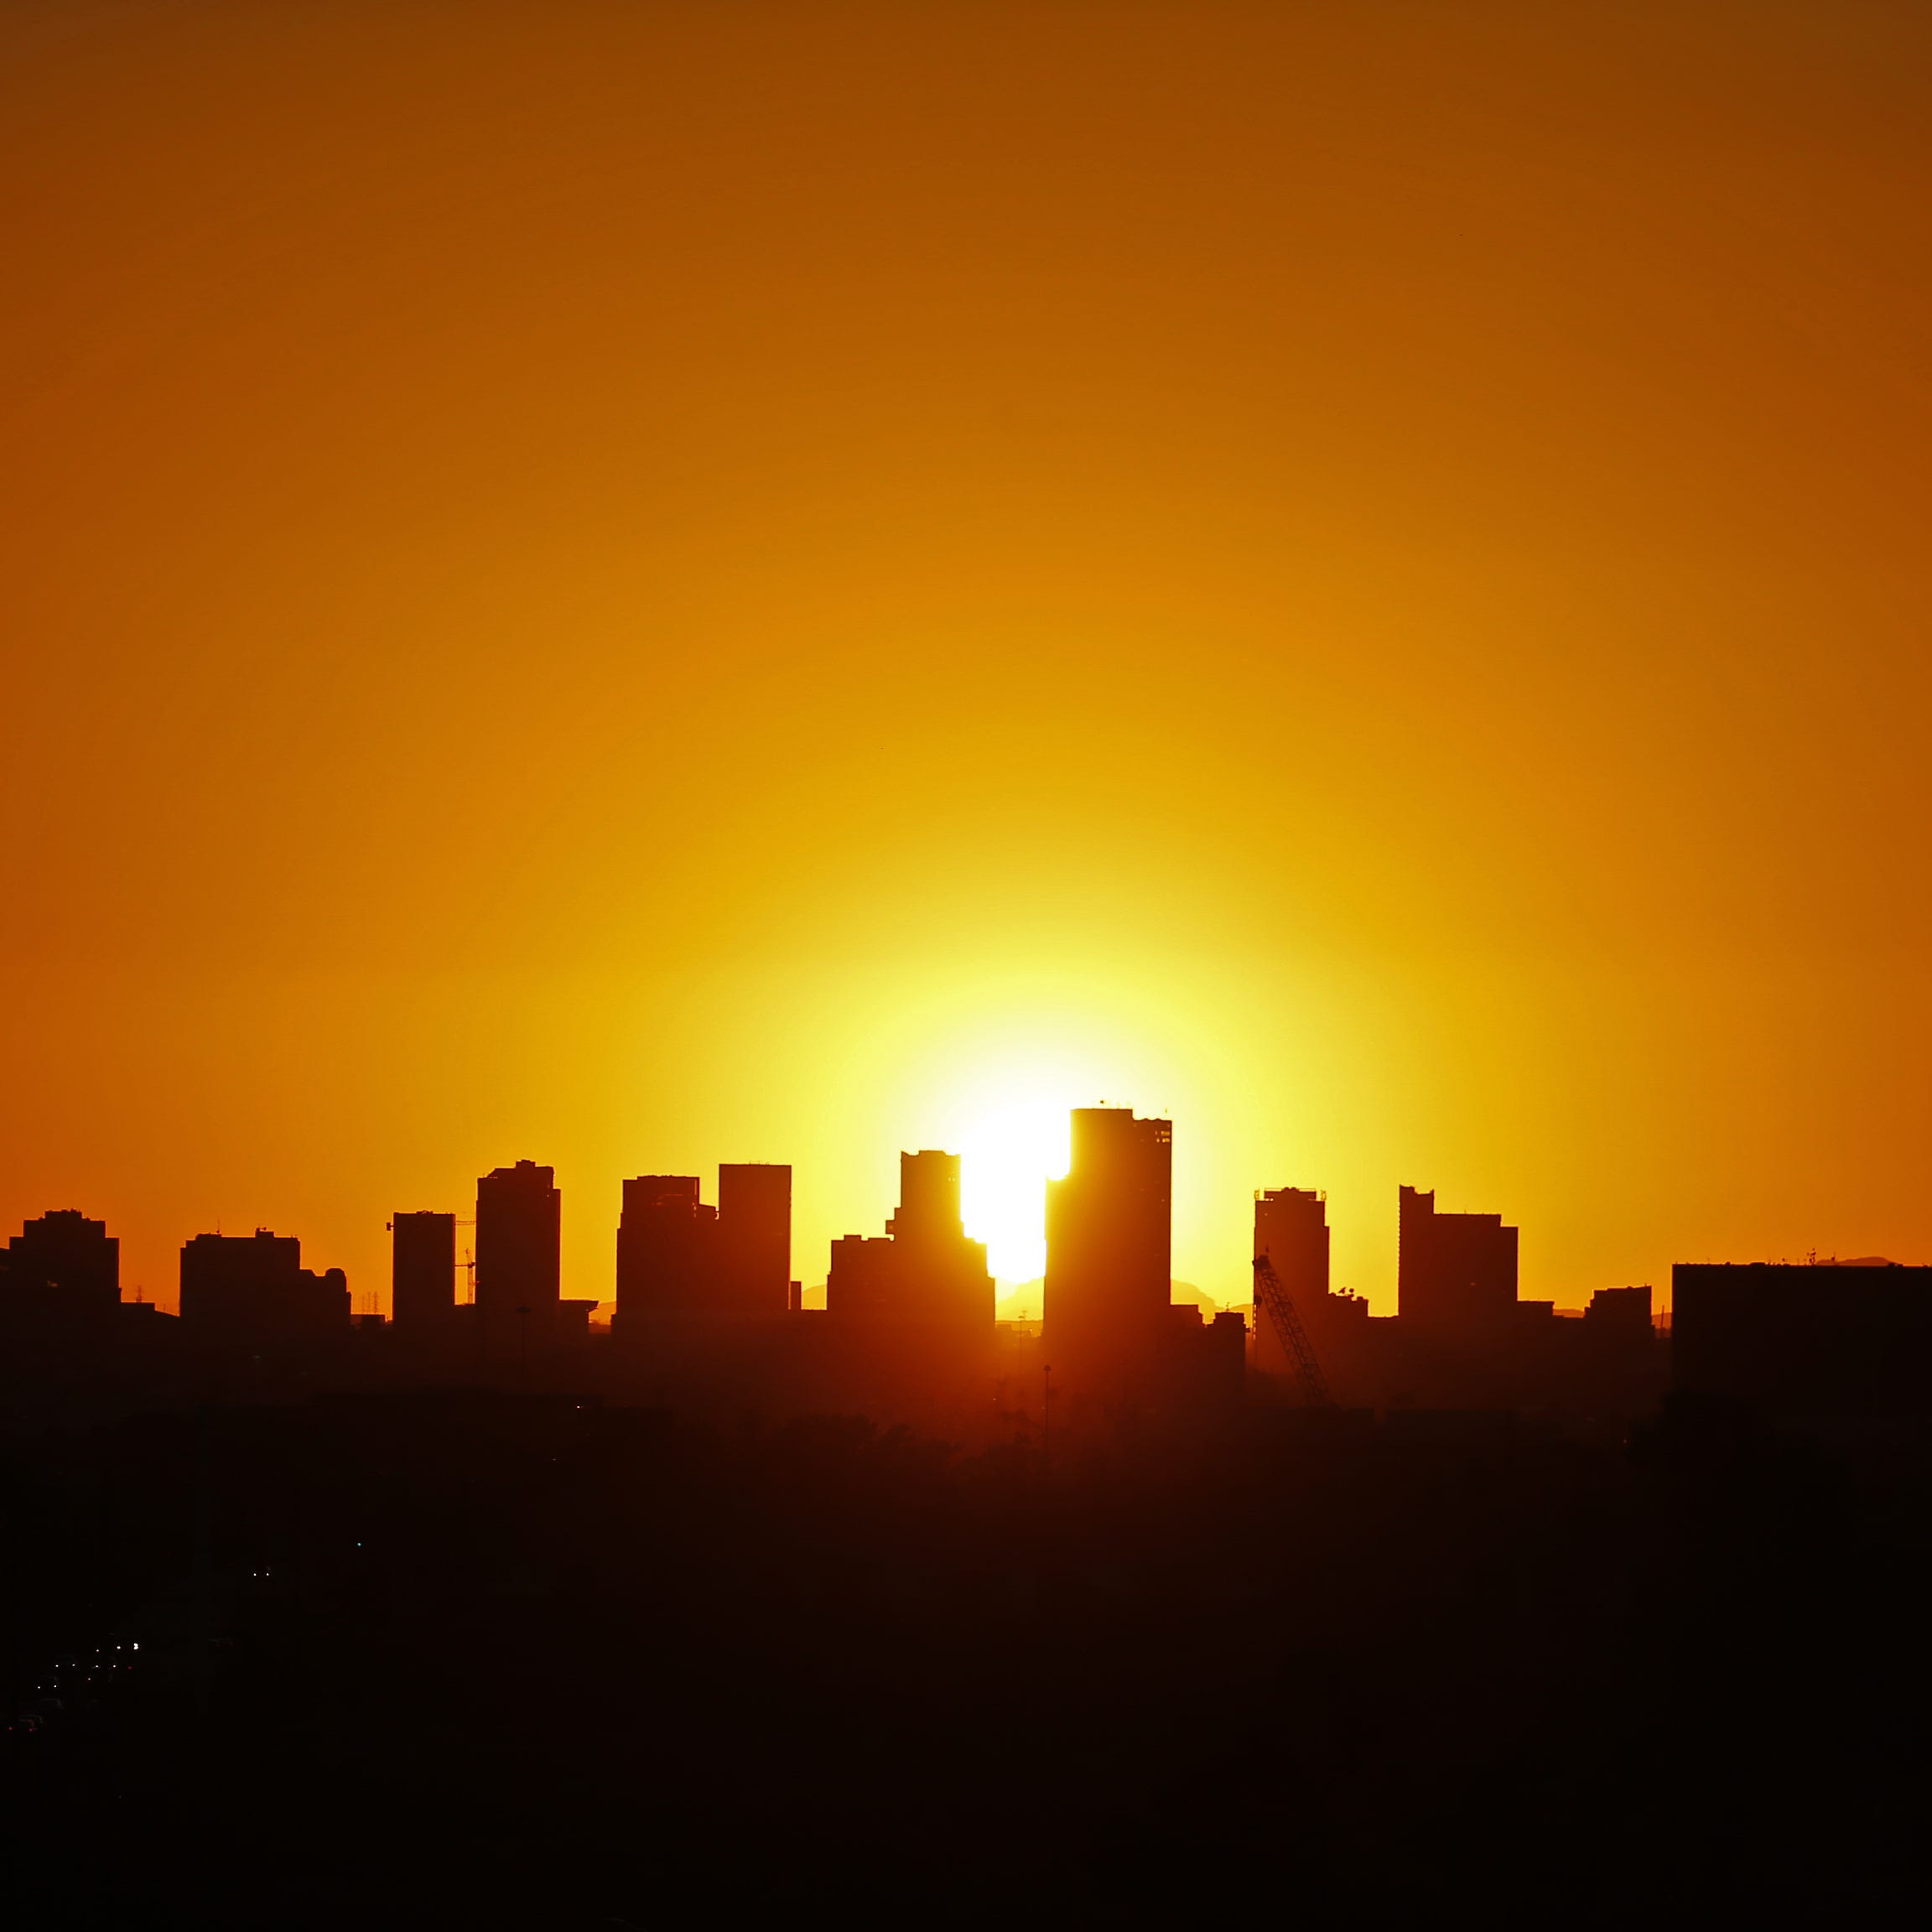 Maricopa County named fastest-growing county in the U.S. for third year in a row